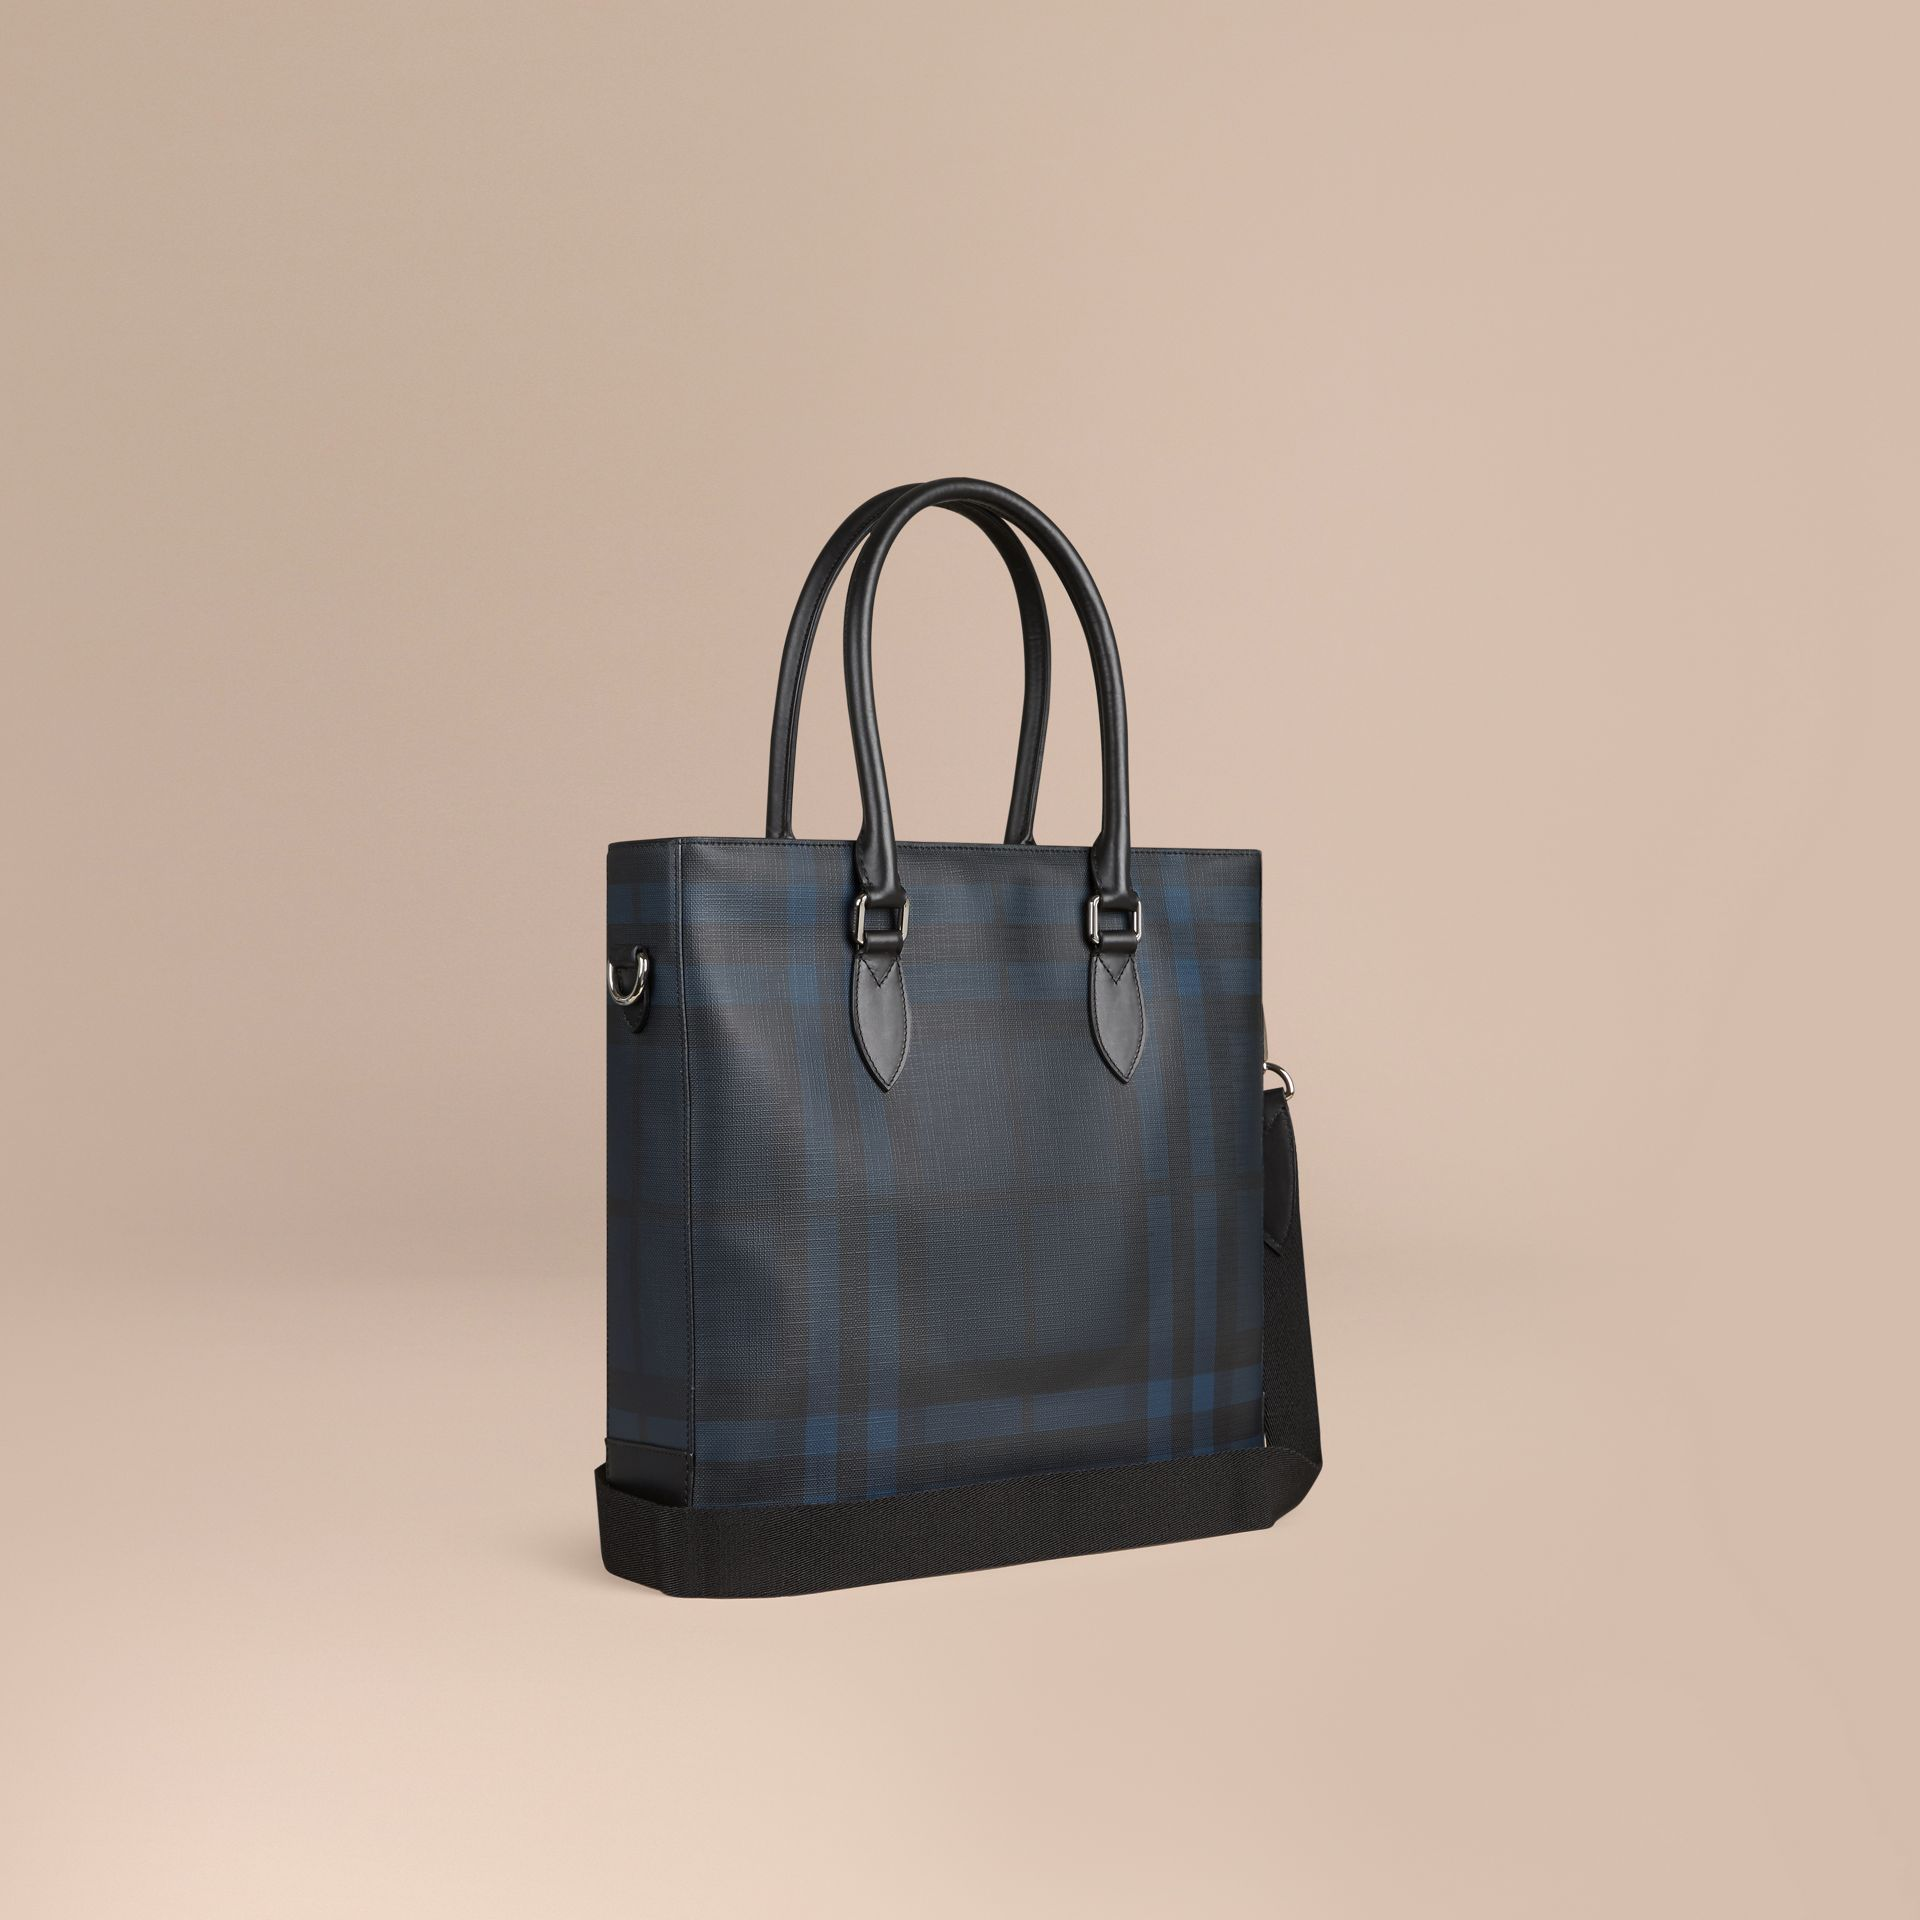 London Check Tote Bag in Navy/black - Men | Burberry Australia - gallery image 1